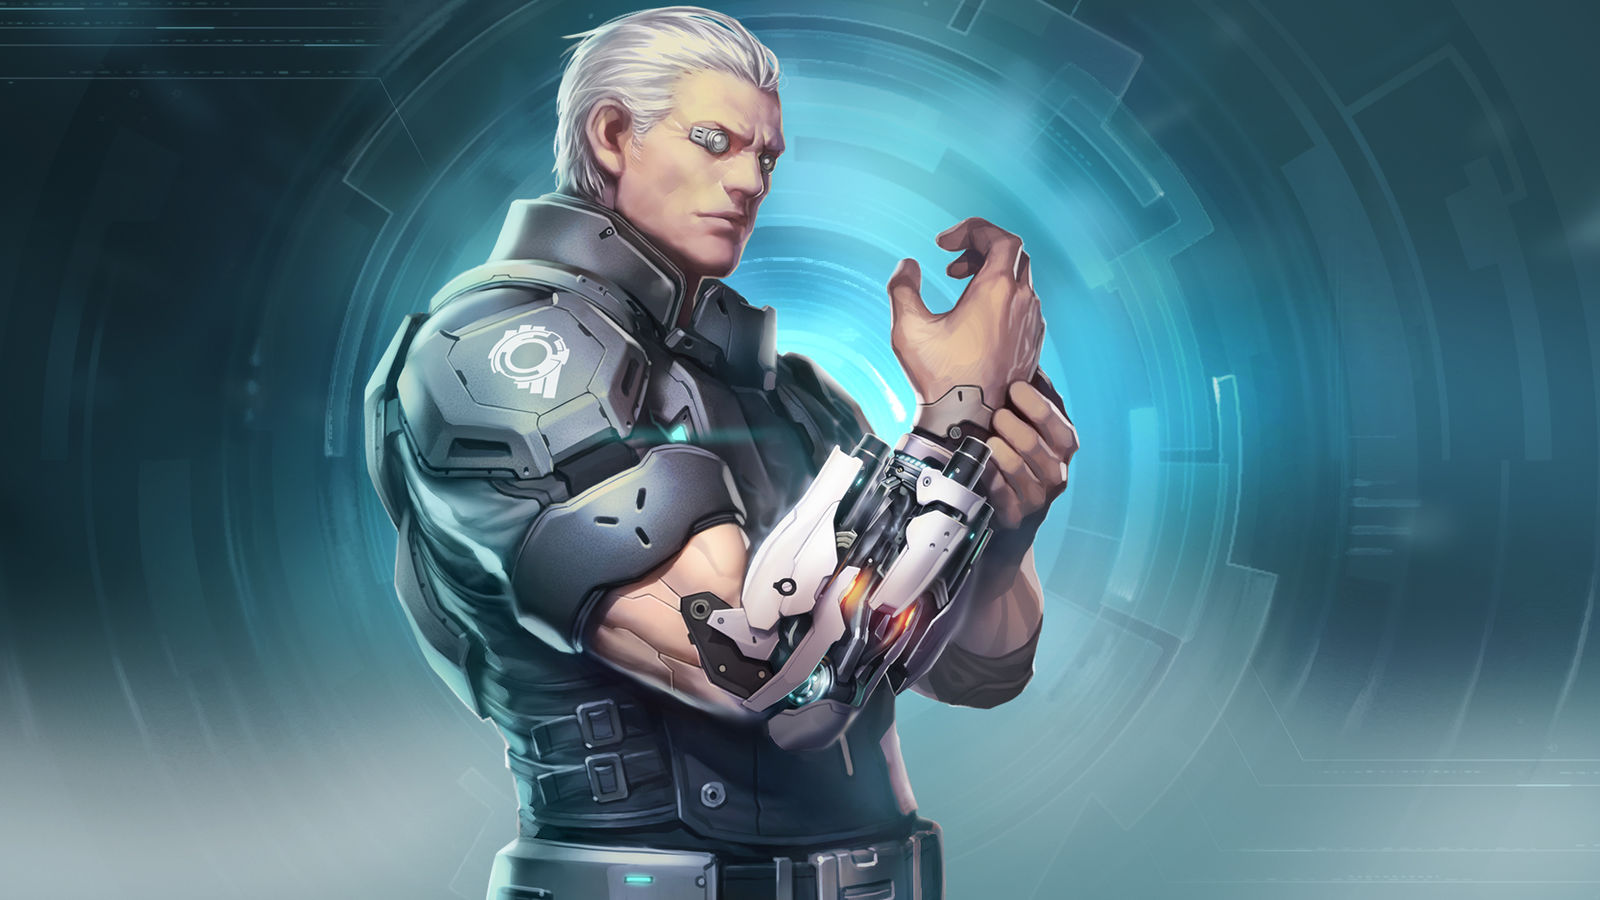 Ghost in the shell batou cosplay agree, rather